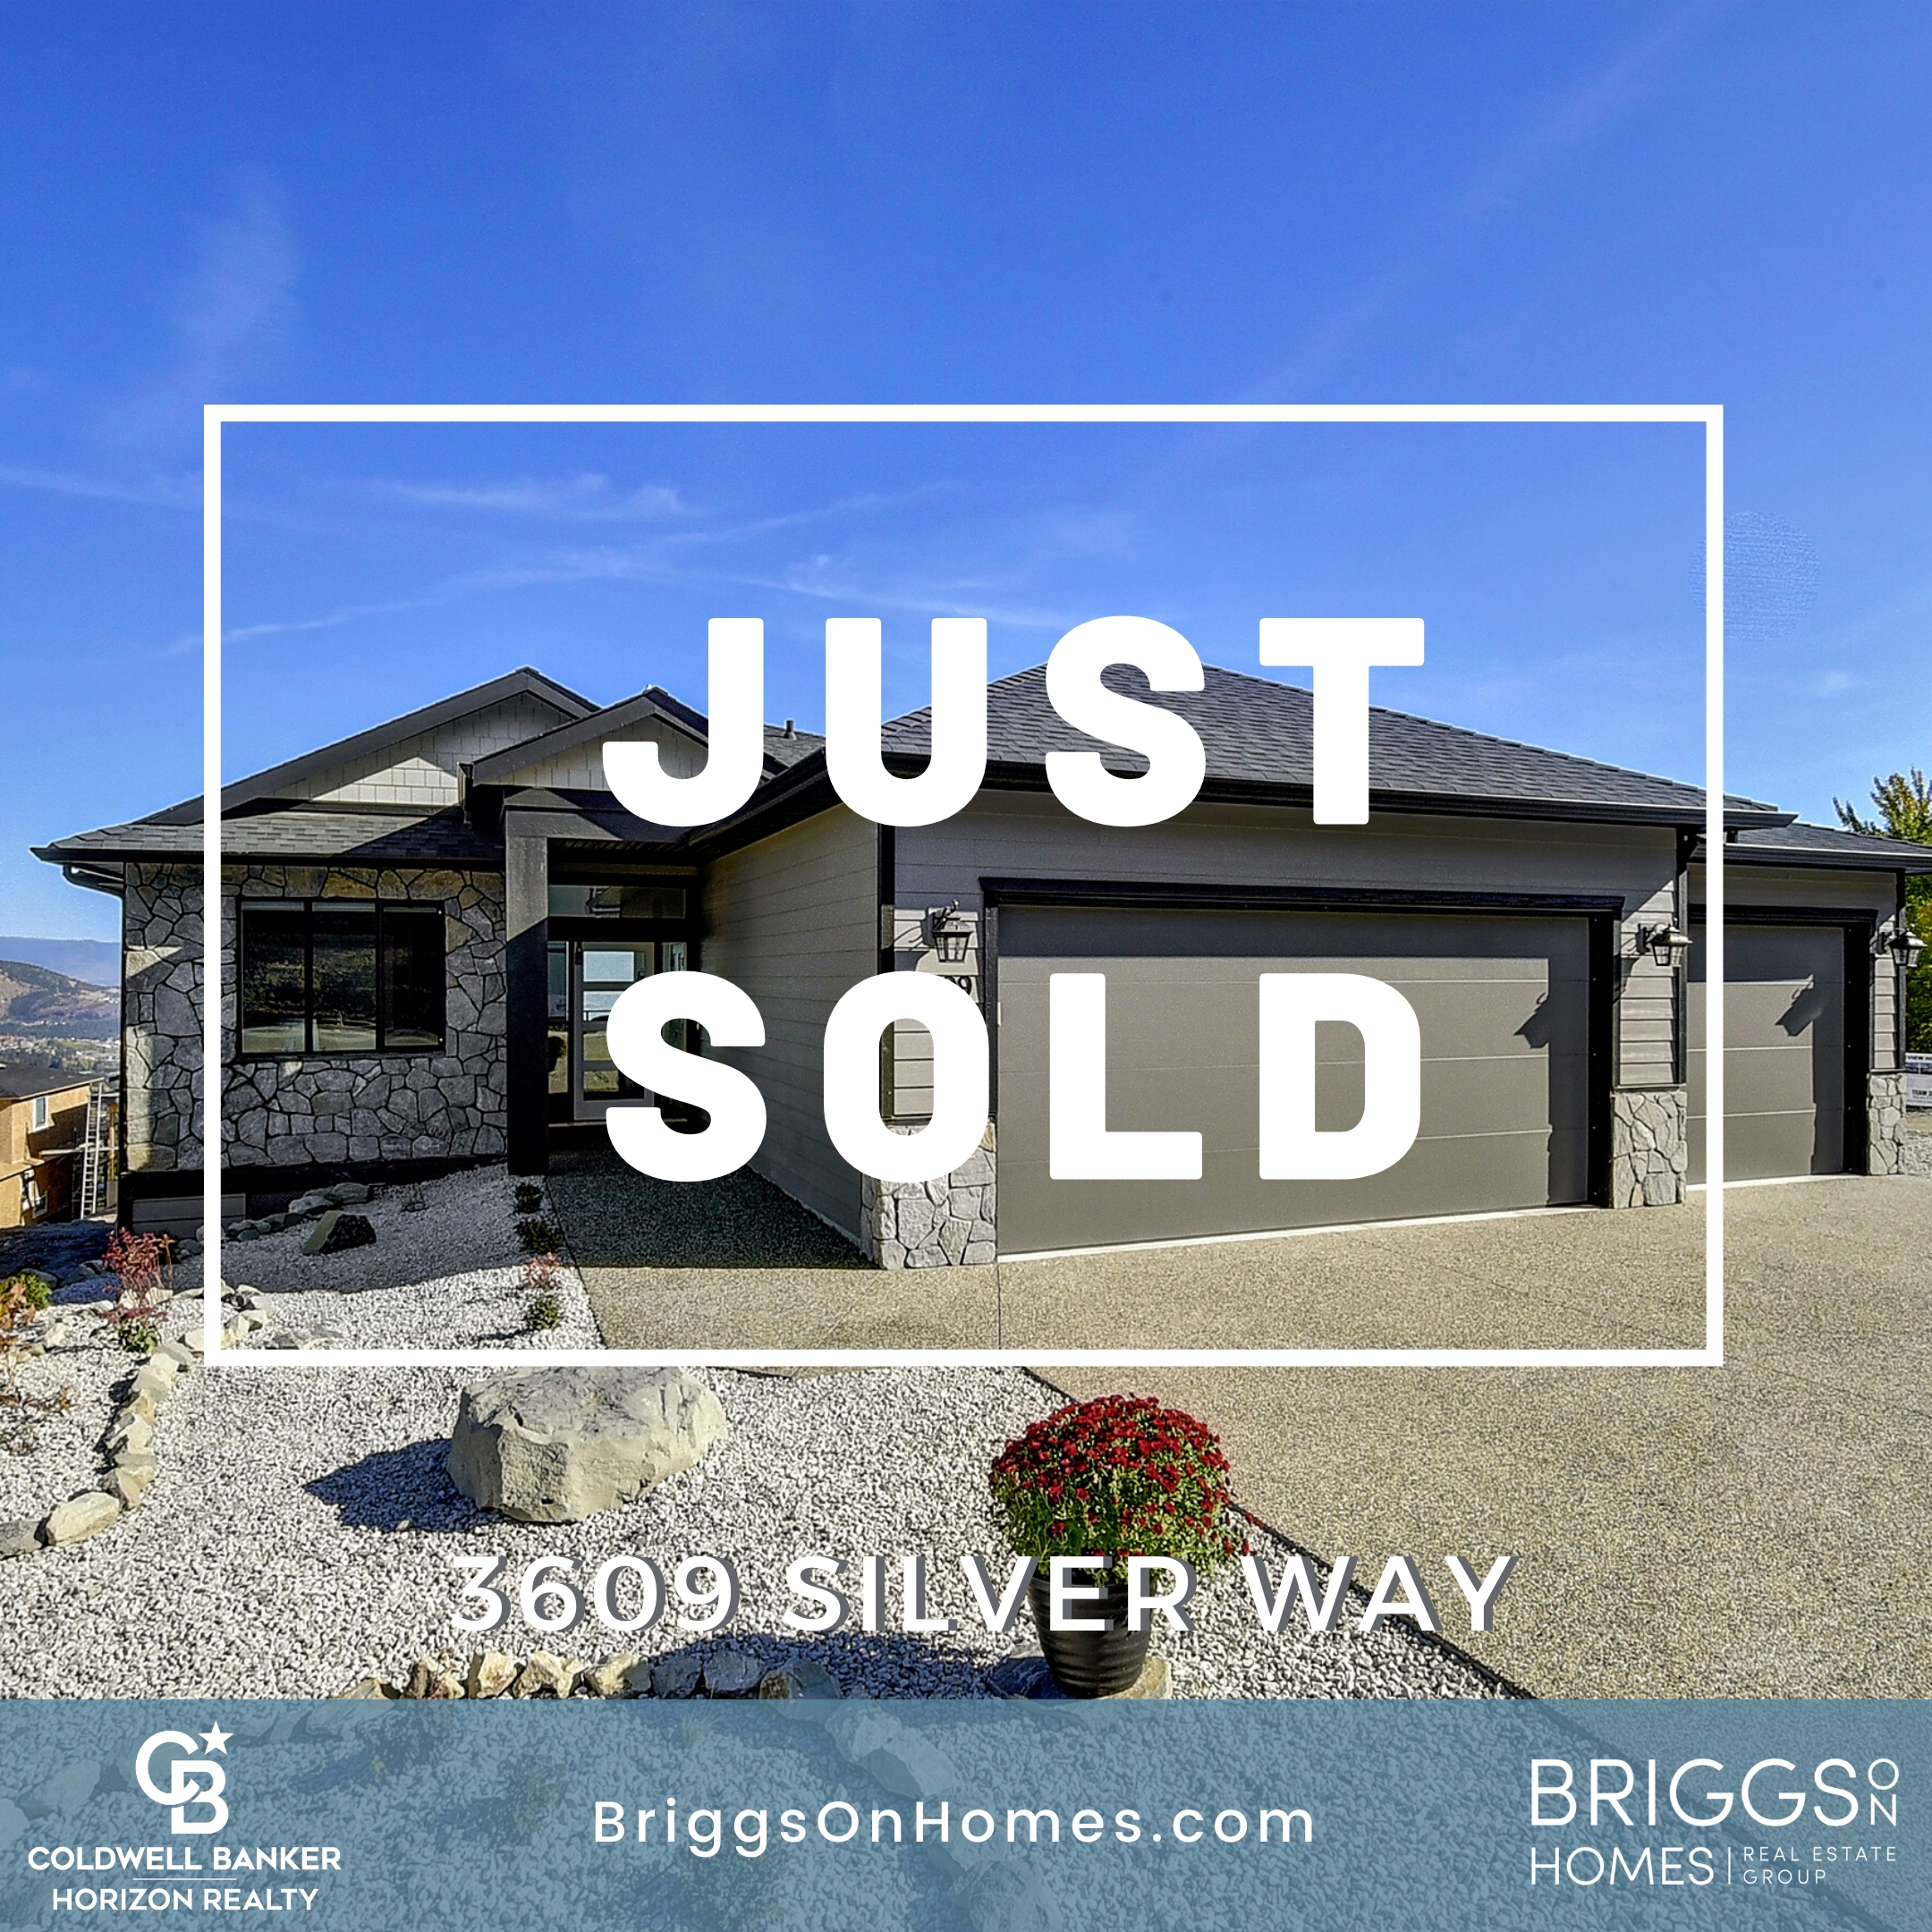 Just SOLD 3609 Silver Way